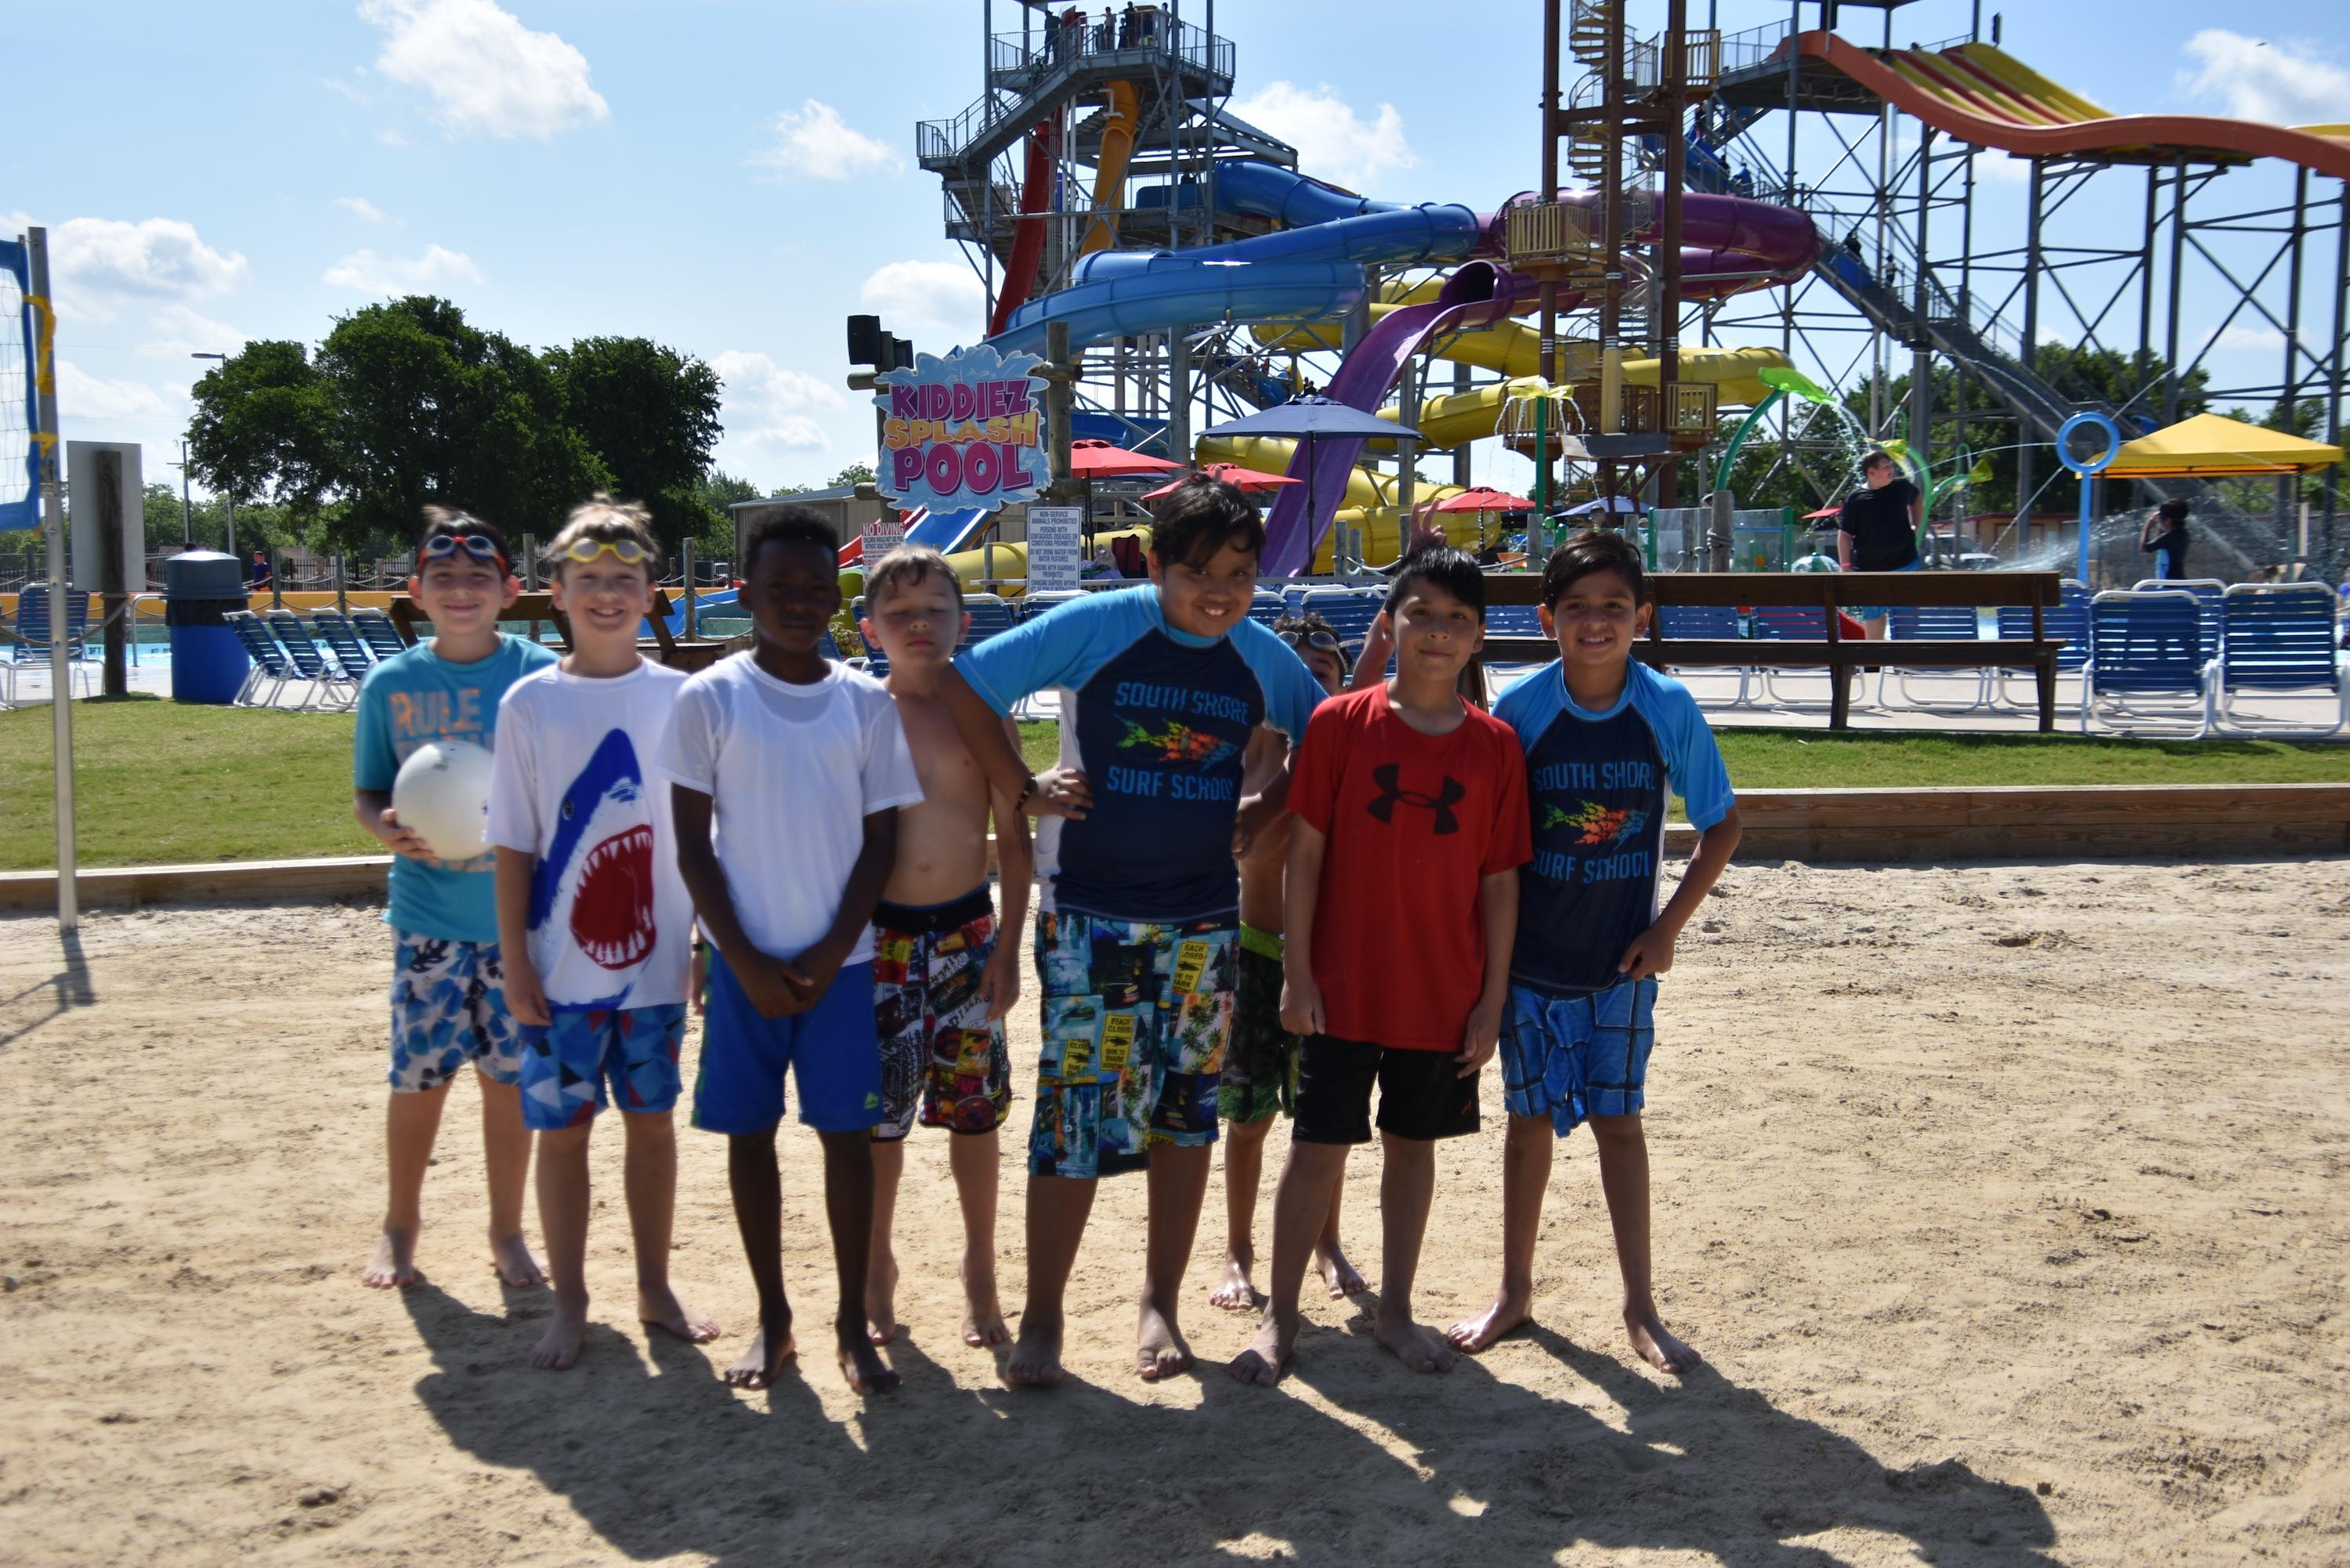 Third and fourth graders spent the day at Splash Dayz White Settlement for exemplifying outstanding behavior, attendance, effort and GRIT (Gumption, Resilience, Integrity and Tenacity).